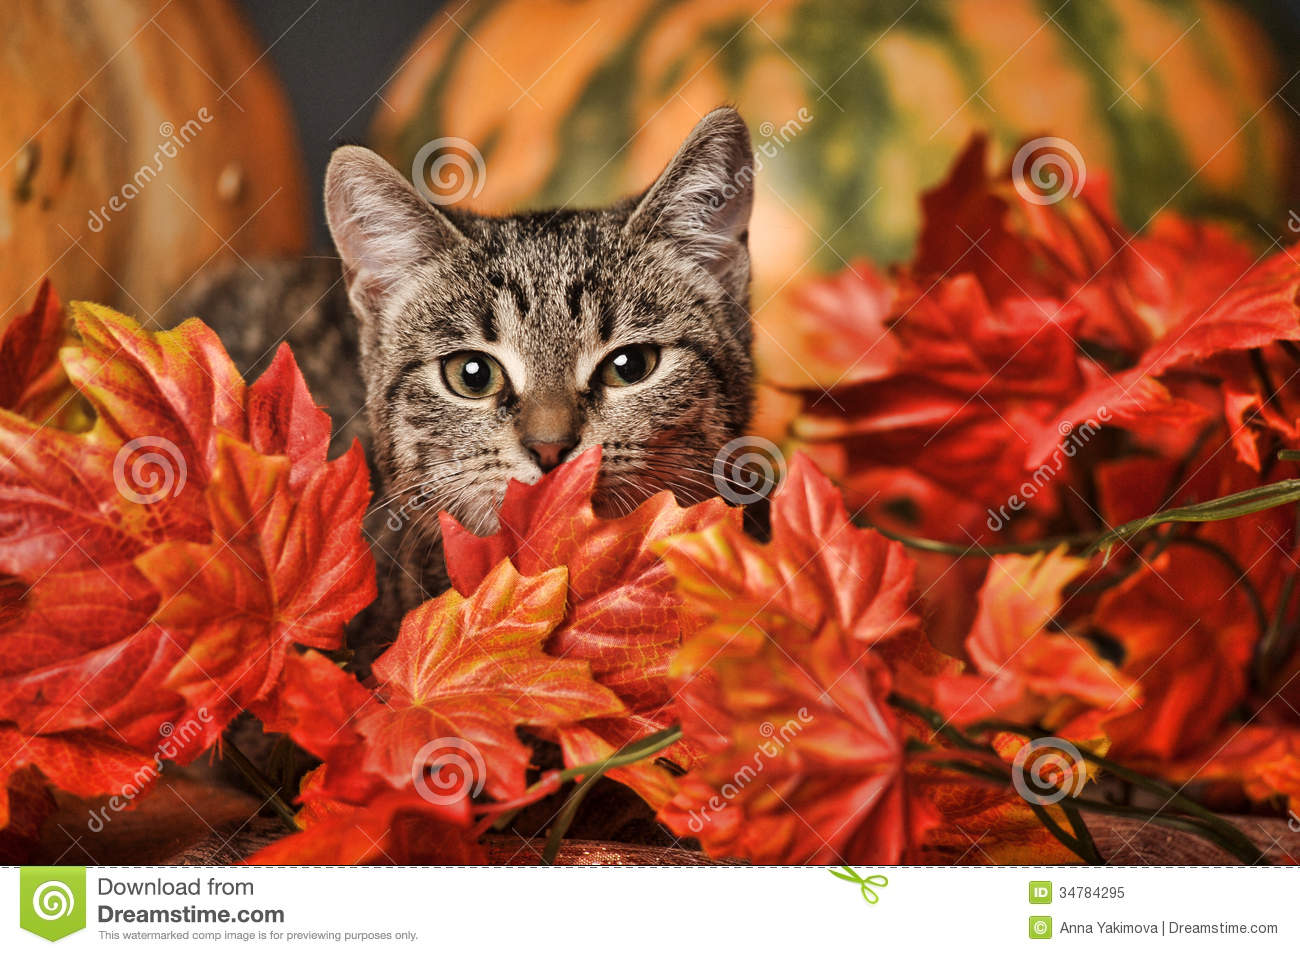 Falling Maple Leaves Wallpaper Autumn Cat Stock Image Image Of Dramatic Falling Beauty